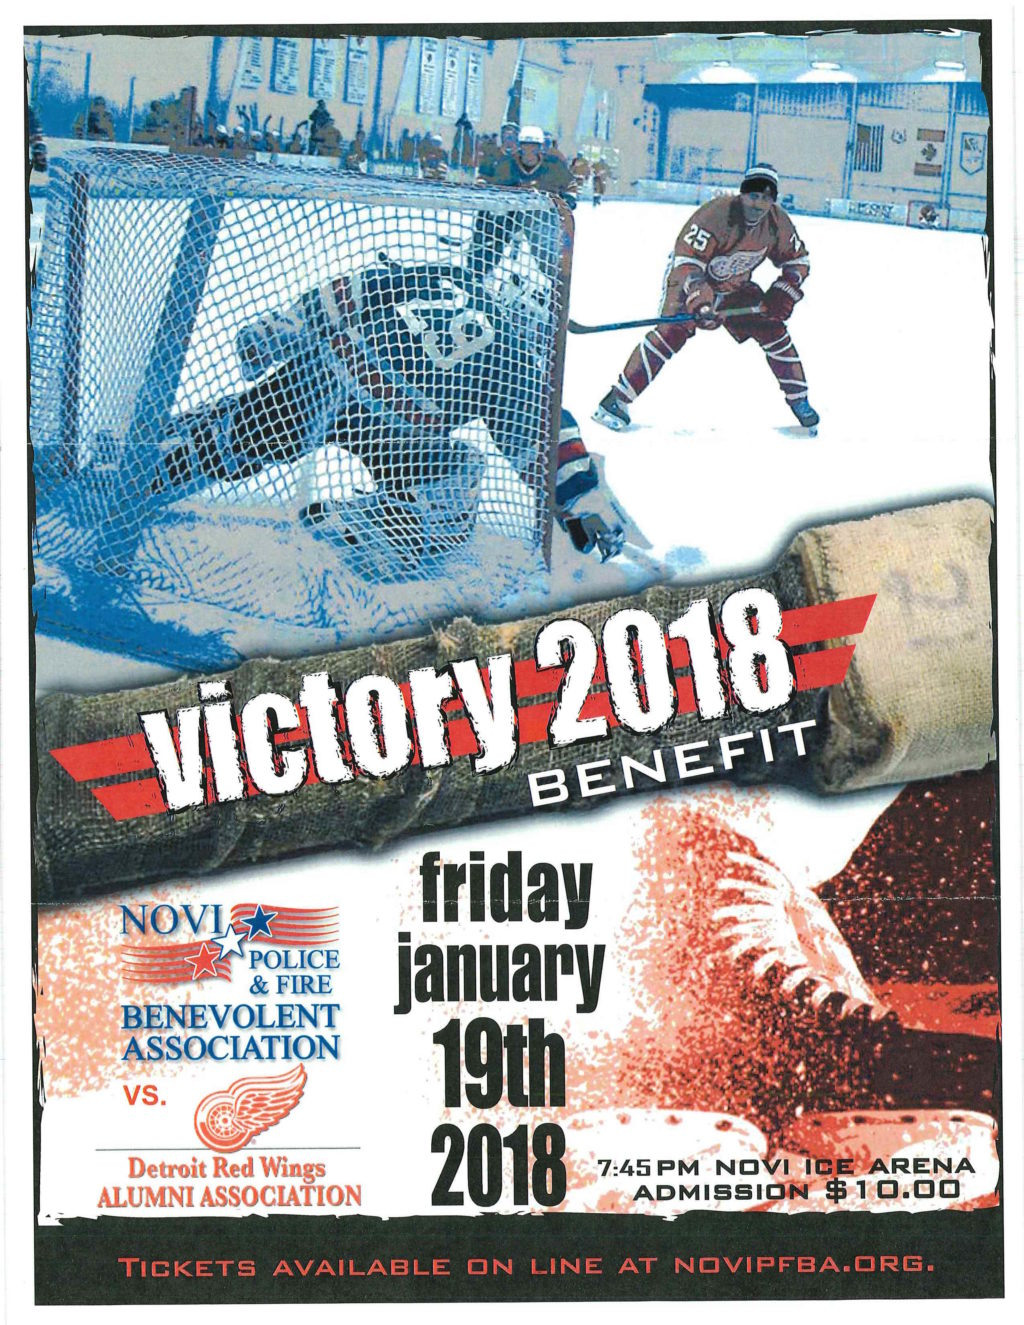 victory 2018 benefit